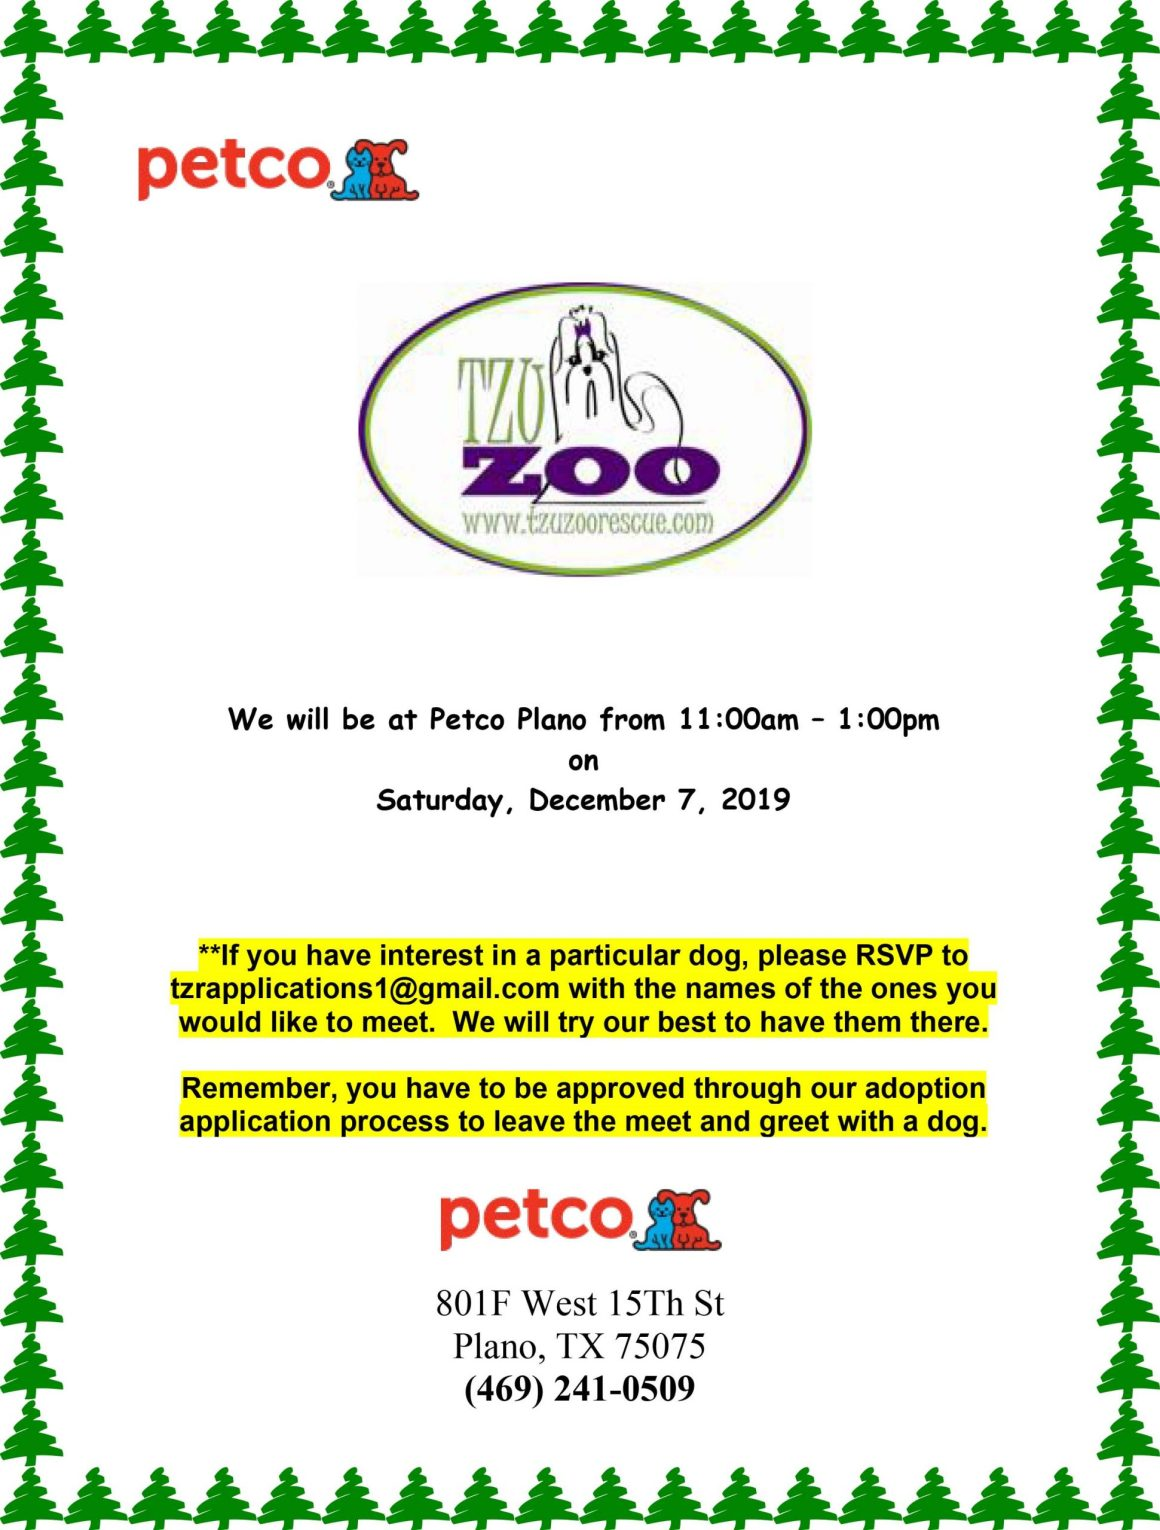 Meet & Greet - Petco Plano